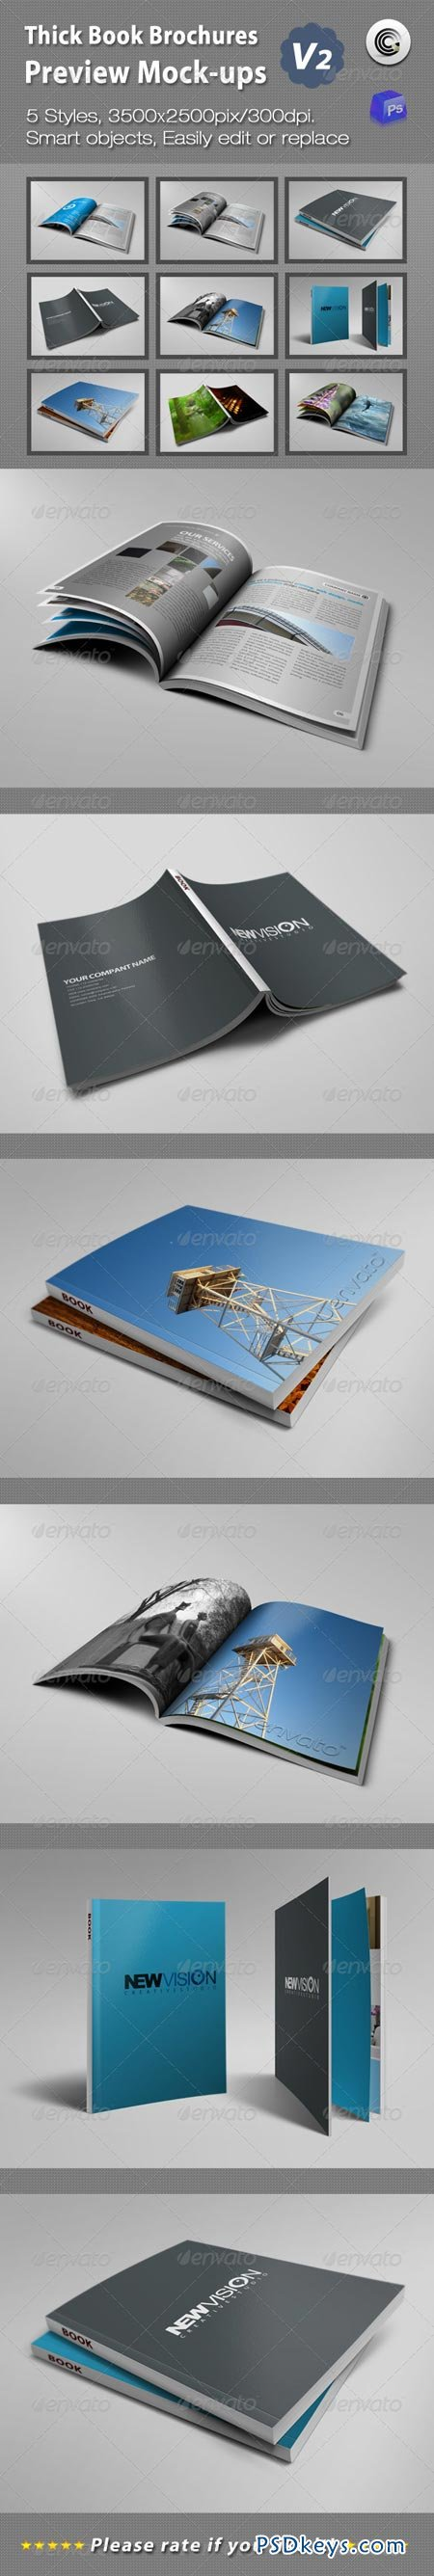 Thick Book Brochures Preview Mock-Ups V2 1866029